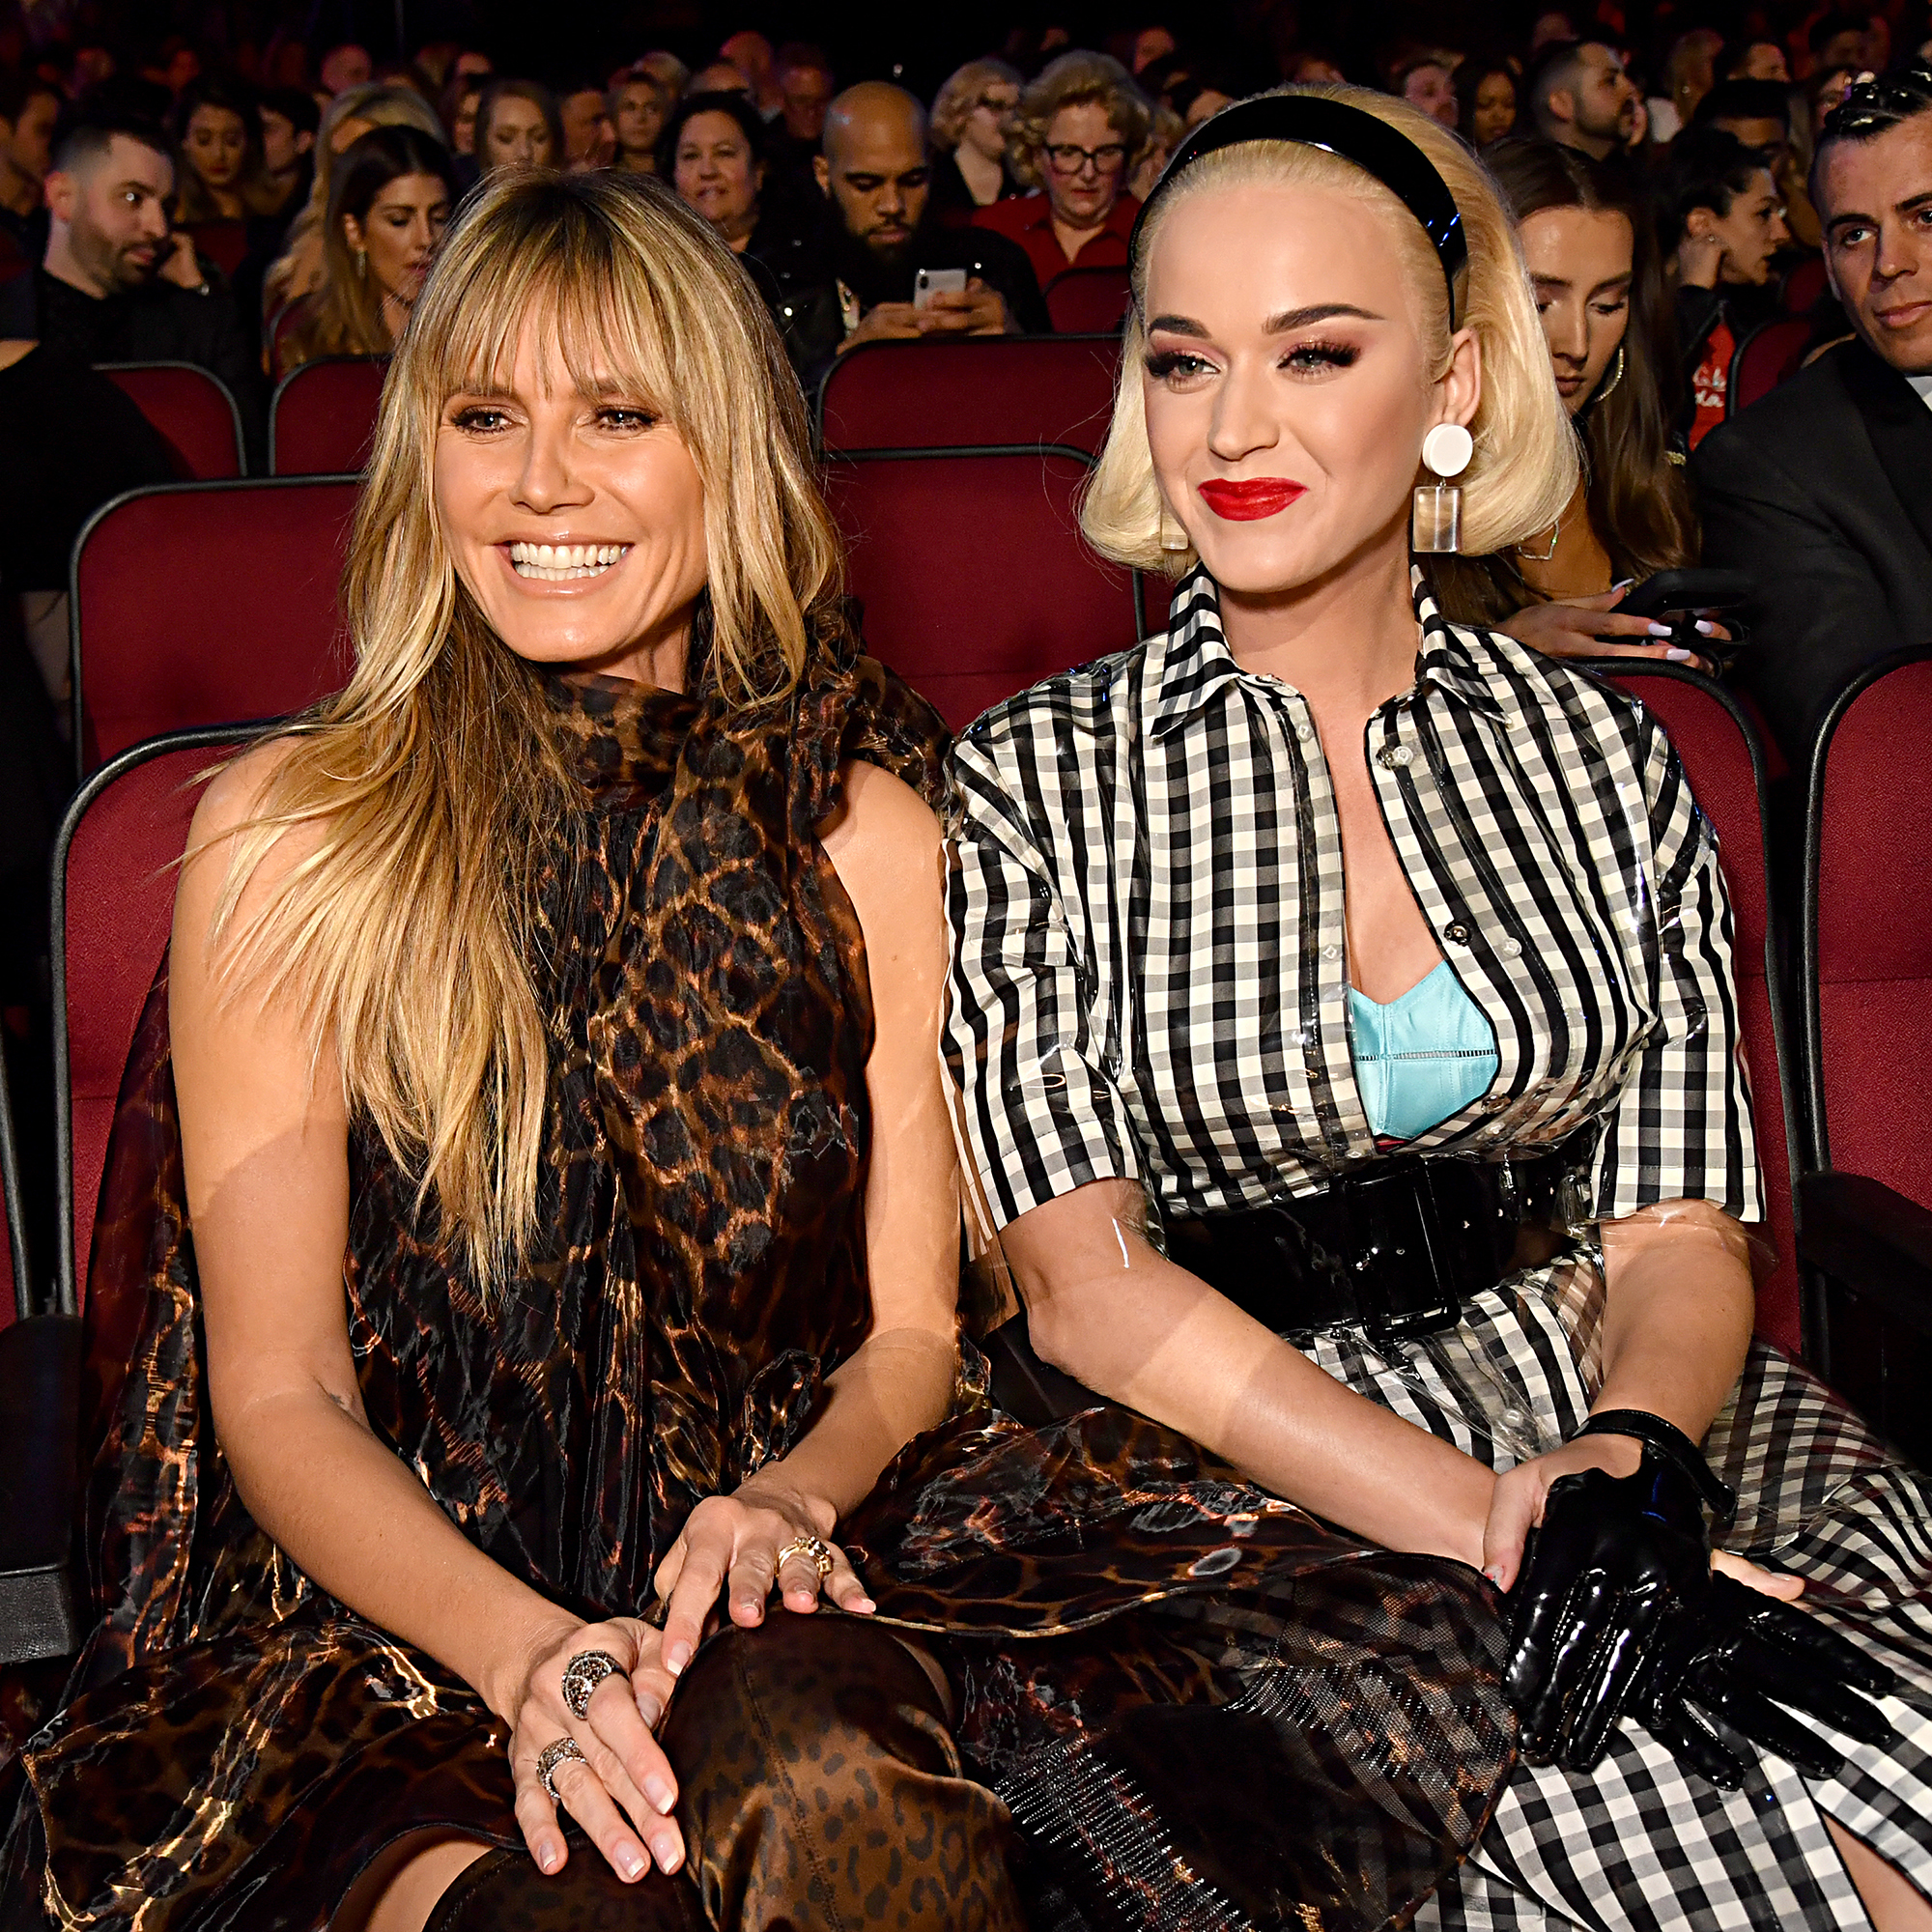 Heidi Klum and Katy Perry pose together during the 2019 iHeartRadio Music Awards which broadcasted live on FOX at the Microsoft Theater in Los Angeles on March 14, 2019.